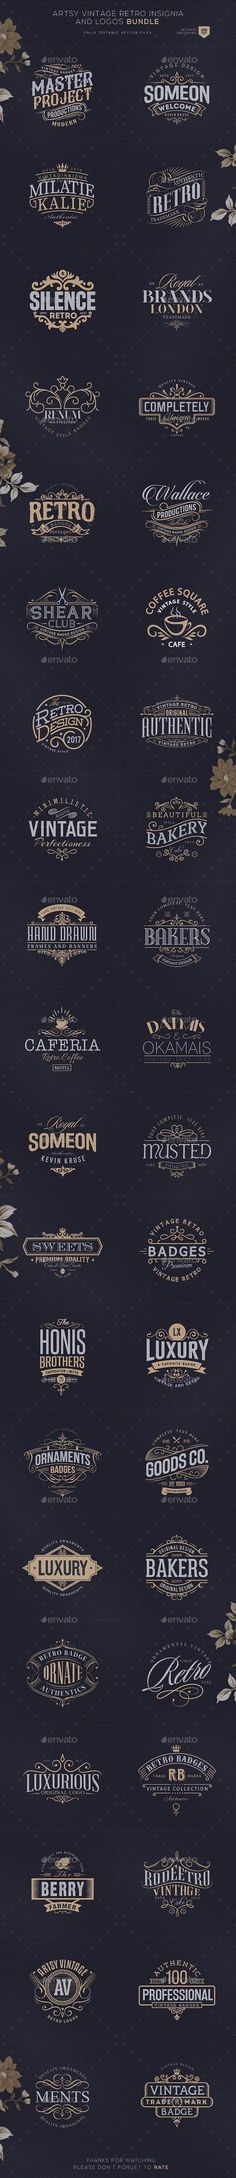 Buy Artsy Vintage Retro Insignia and Logos Bundle by designhatti on GraphicRiver. Artsy Vintage Retro Insignia and Logos BundleA Bundle of 40 Artsy Badges and logos which can be used as your logos, l. Vintage Labels, Retro Vintage, Logo Vintage, Vintage Shoes Men, Vintage Makeup Vanities, Typography Design, Logo Design, Vintage Wedding Colors, Vintage Travel Themes